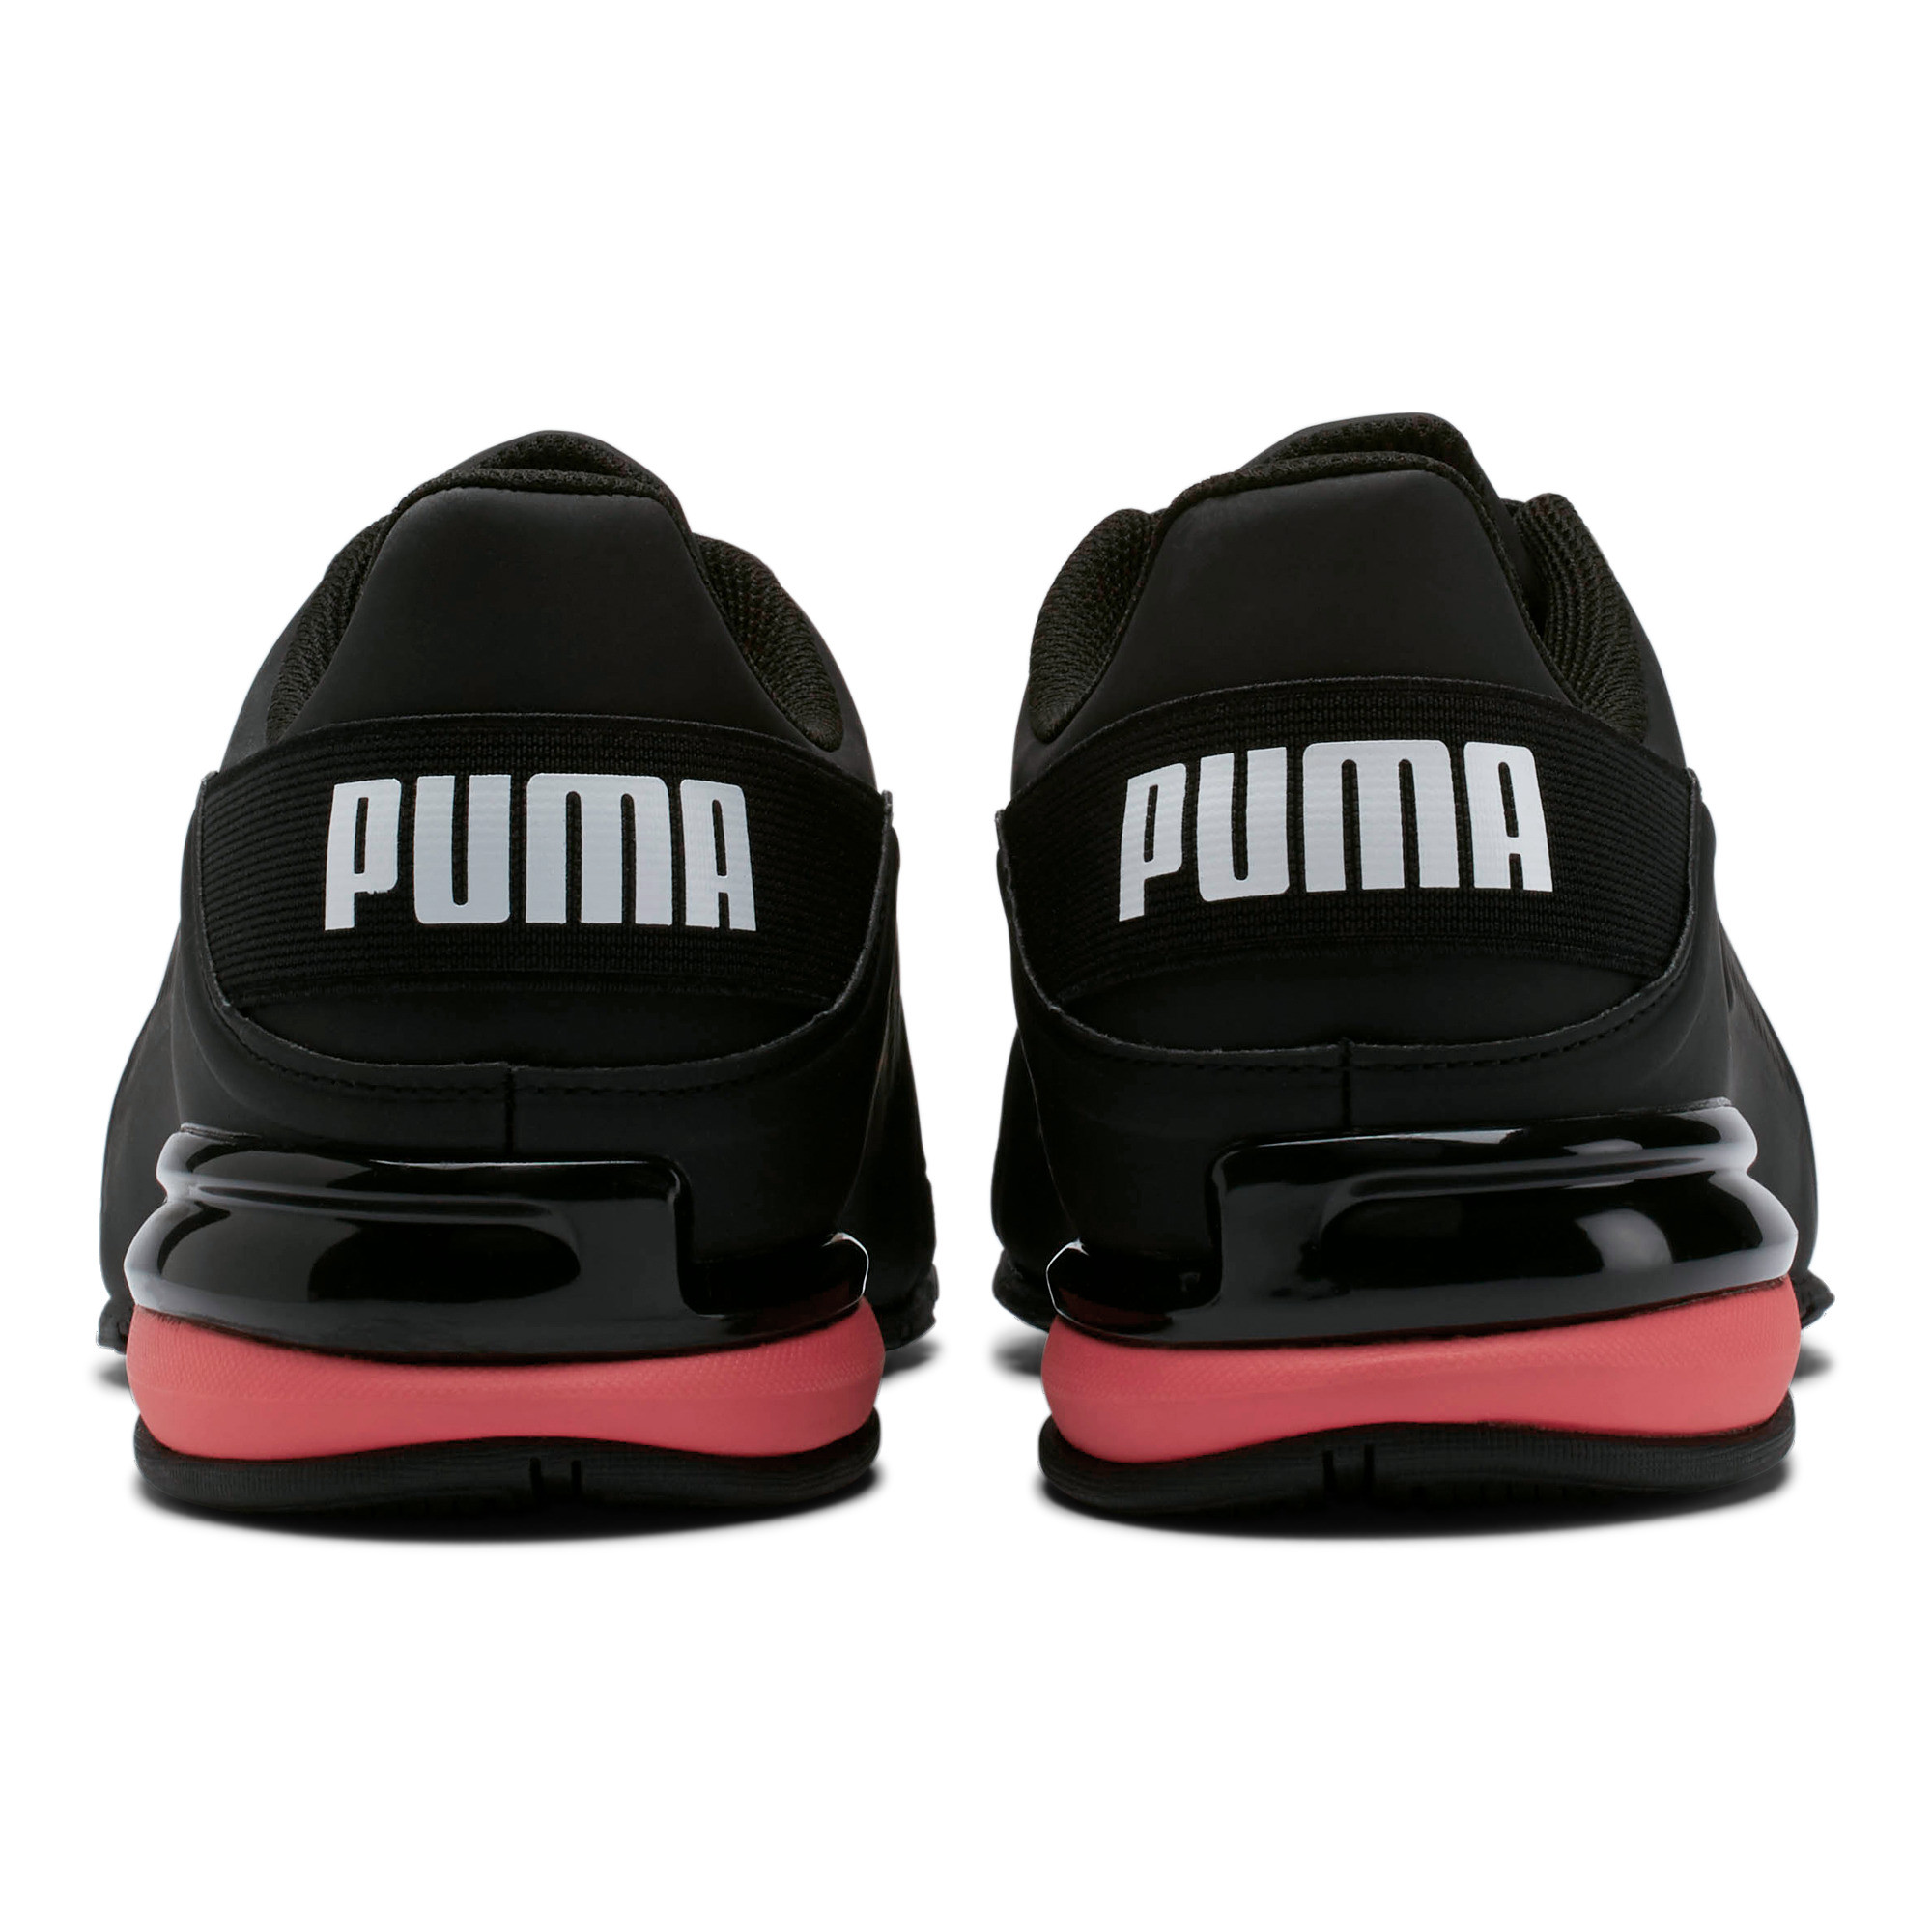 PUMA-Men-039-s-Viz-Runner-Training-Shoes thumbnail 3